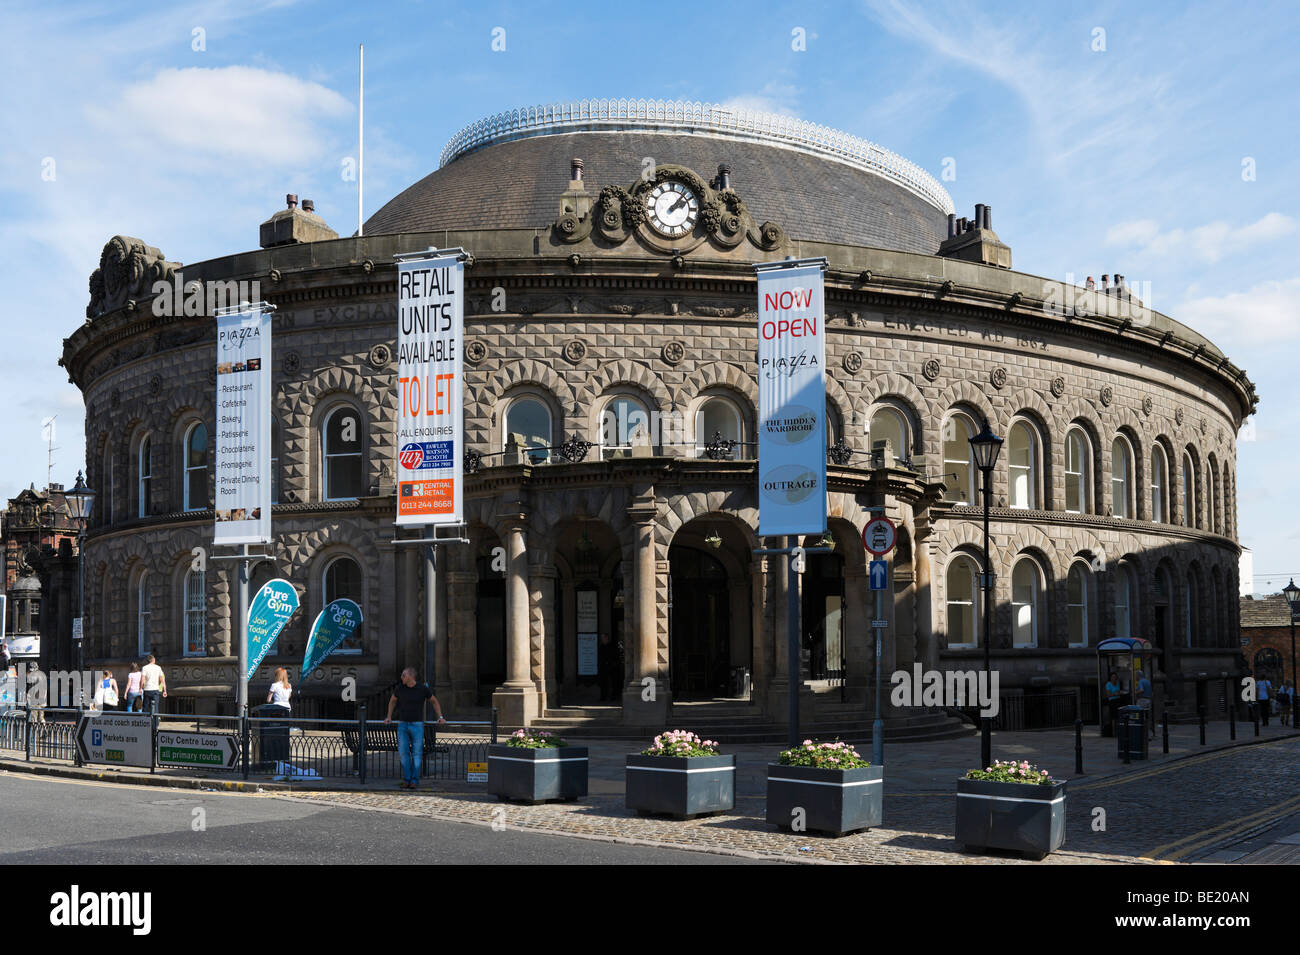 The Corn Exchange, built by the local architect Cuthbert Brodrick in 1863, Leeds, West Yorkshire, England - Stock Image